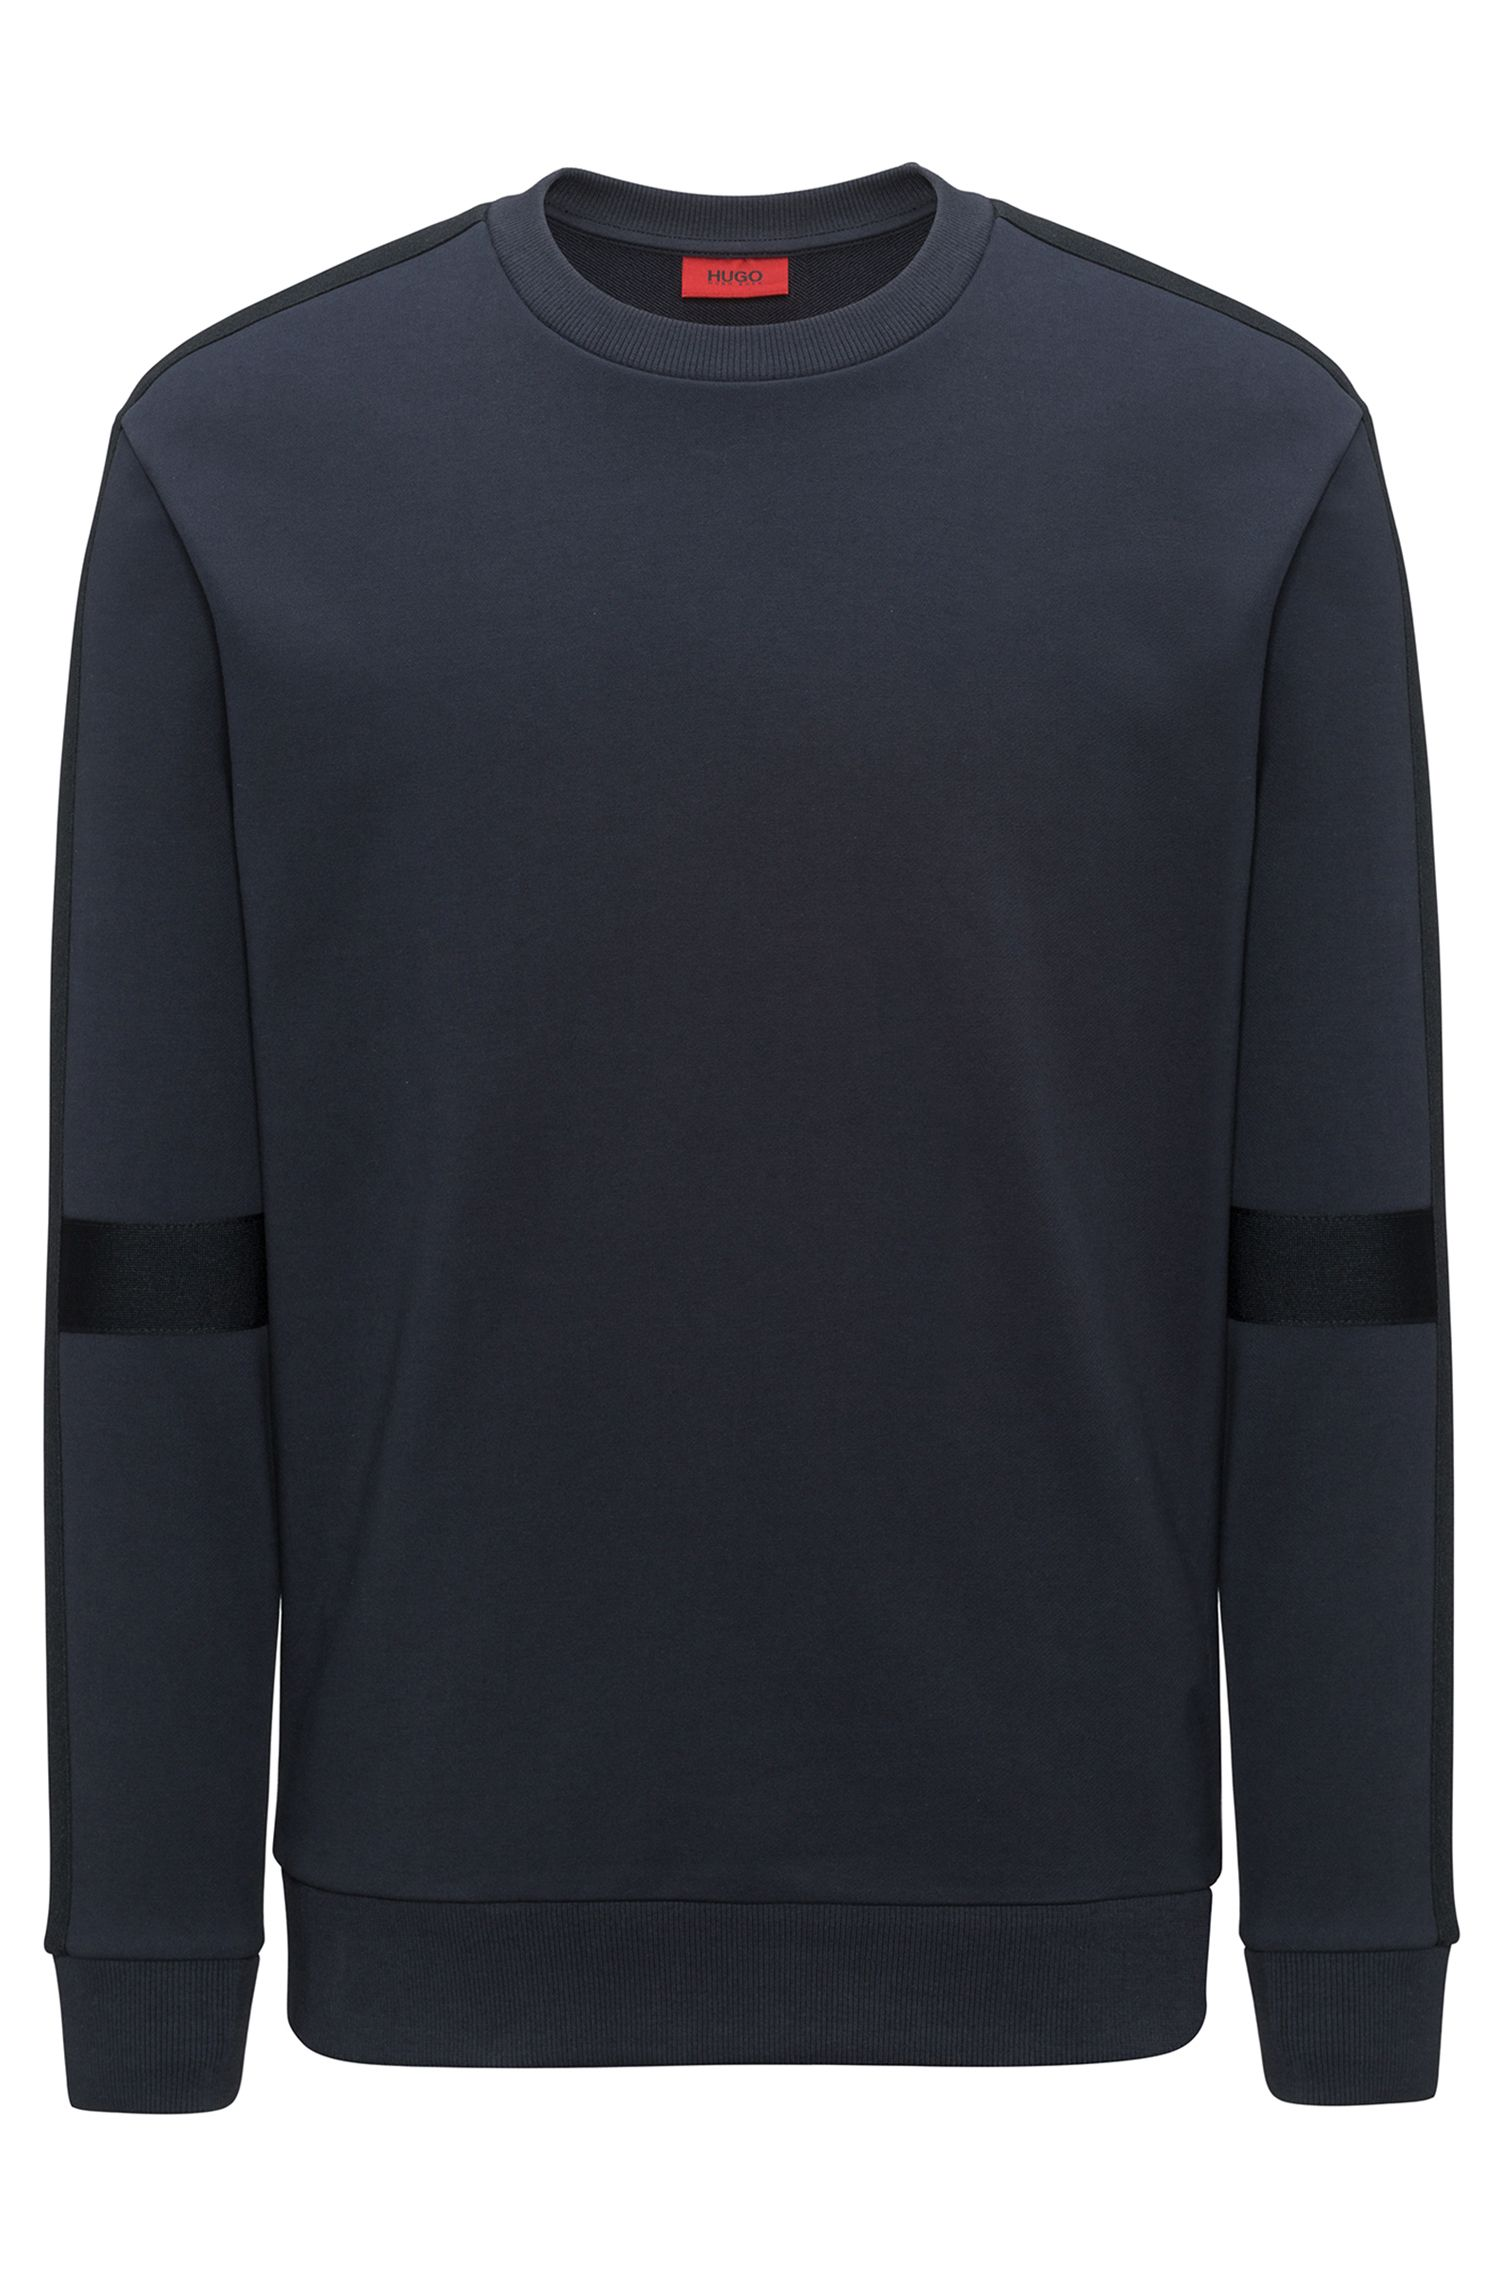 Hugo Boss - Sweat Oversized Fit à empiècements ton sur ton - 1